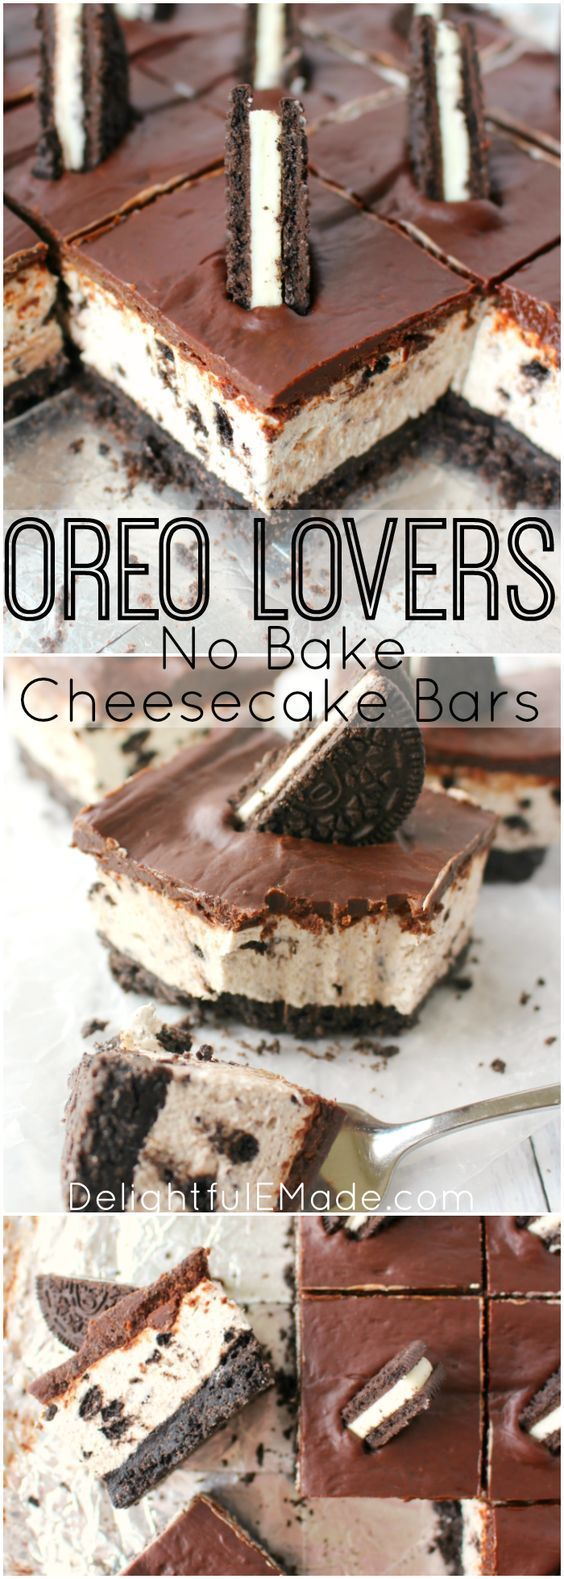 The ultimate dessert for anyone that loves OREO cookies! A thick OREO crust, creamy OREO no-bake cheesecake filling, and topped with a delicious layer of chocol